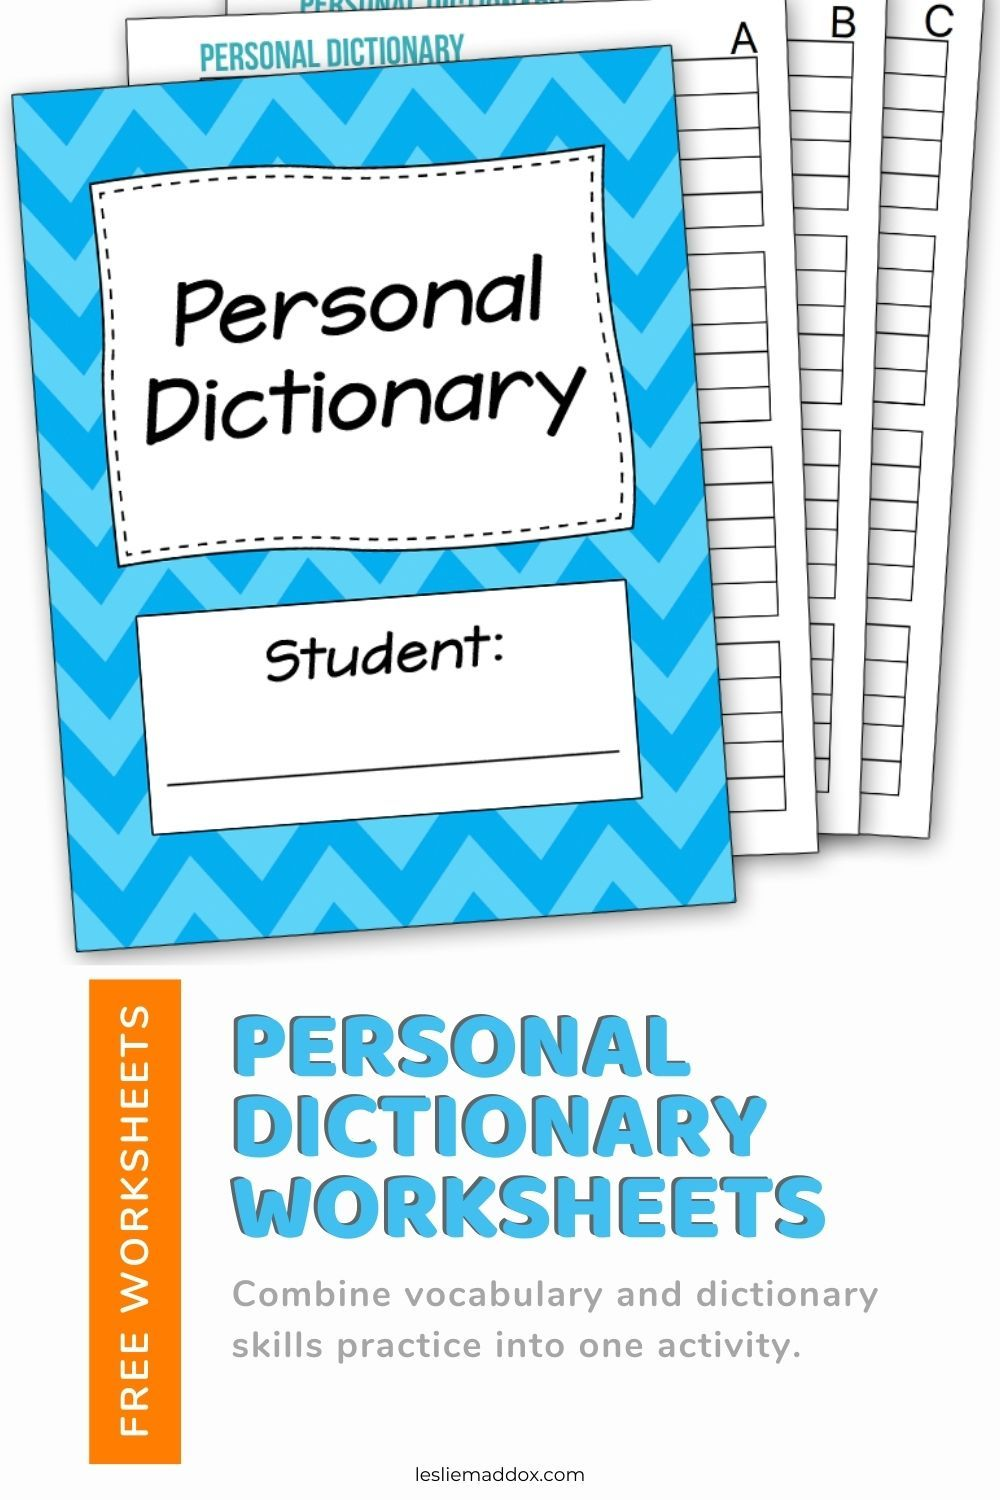 Free Vocabulary Worksheets Dictionary Skills Vocabulary Personal Dictionary [ 1500 x 1000 Pixel ]